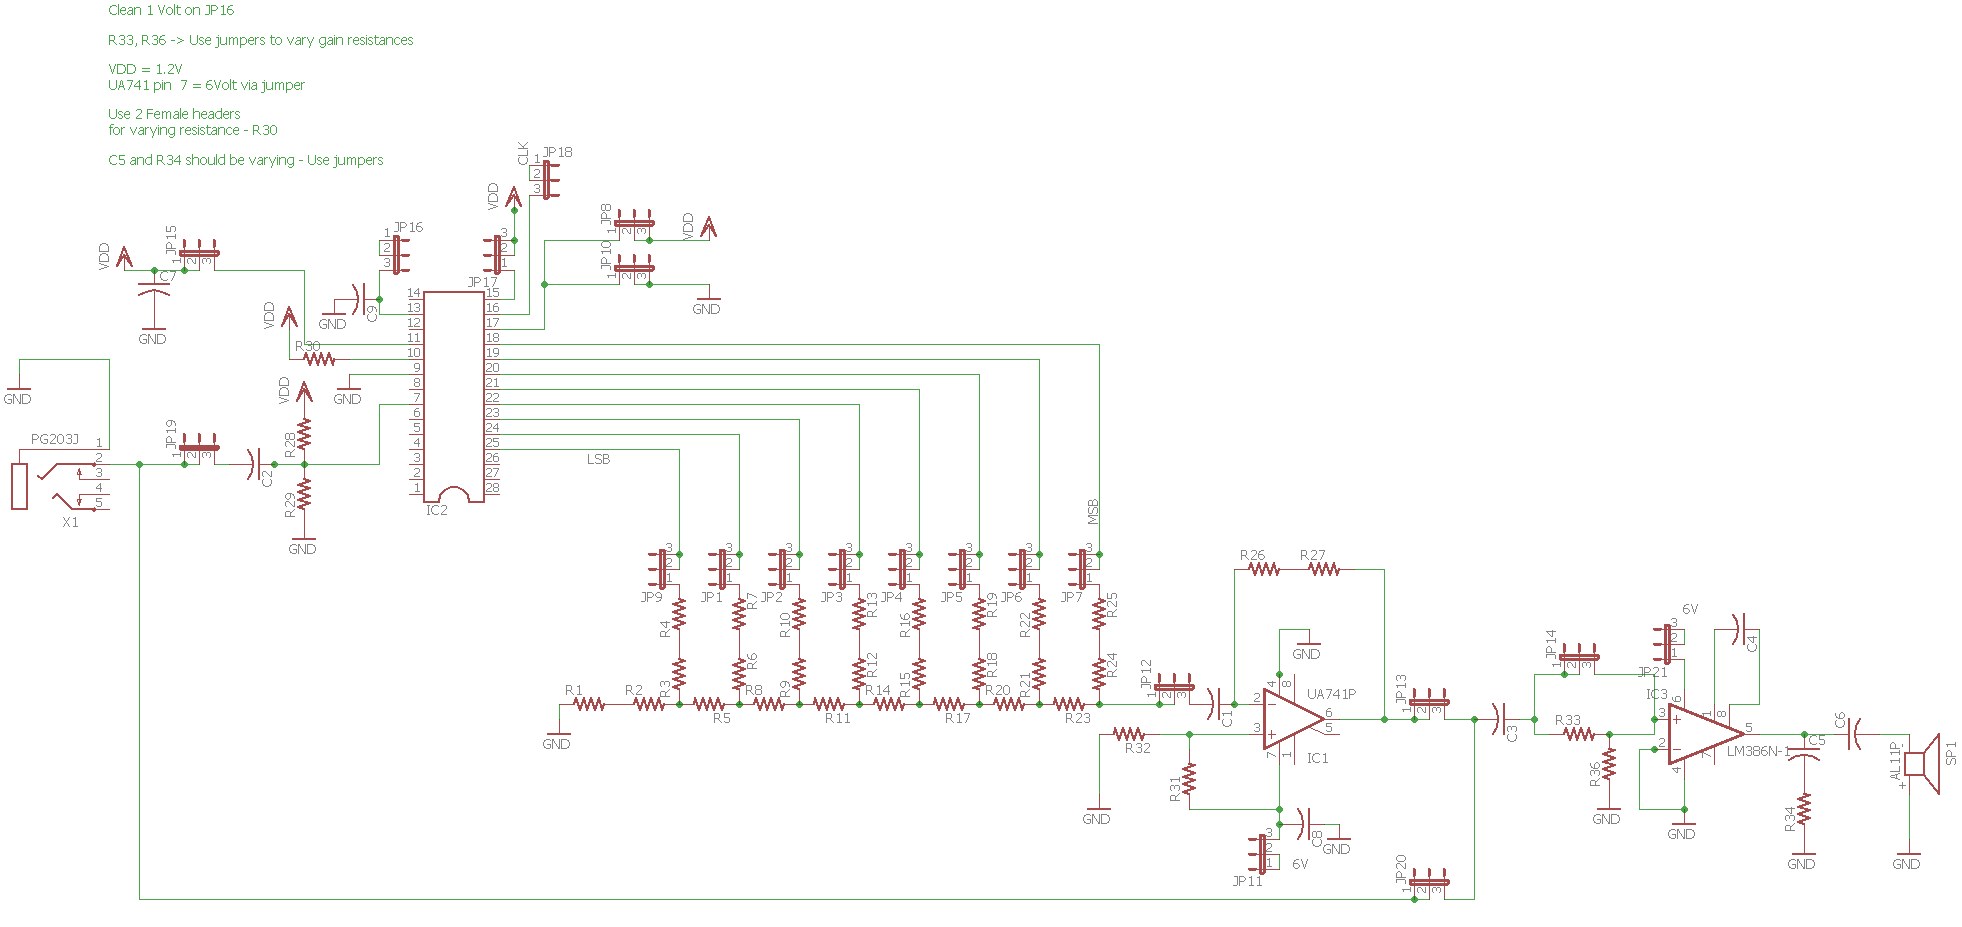 Pcb Design Figure 2 Schematic View In Eagle Software Fig 4